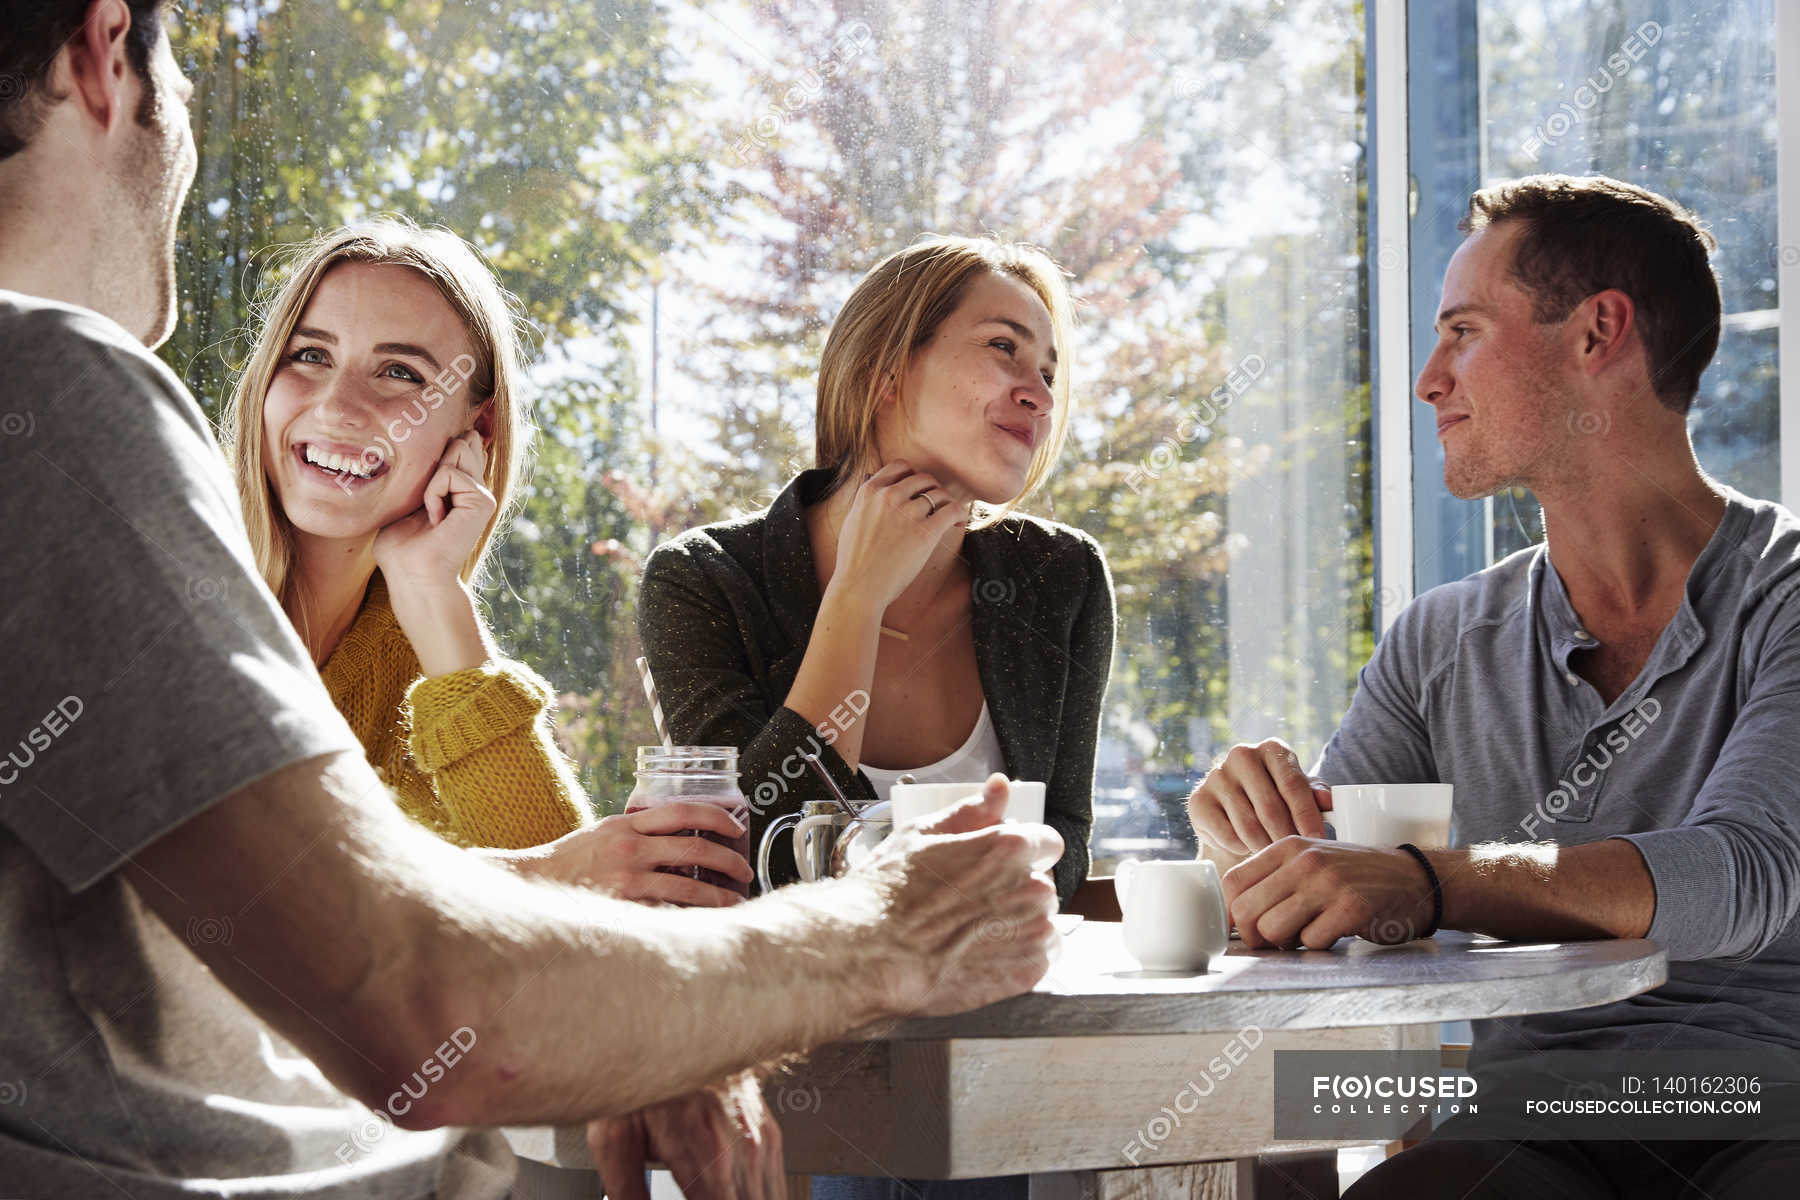 People Sitting At Cafe Couple Colour Stock Photo 140162306